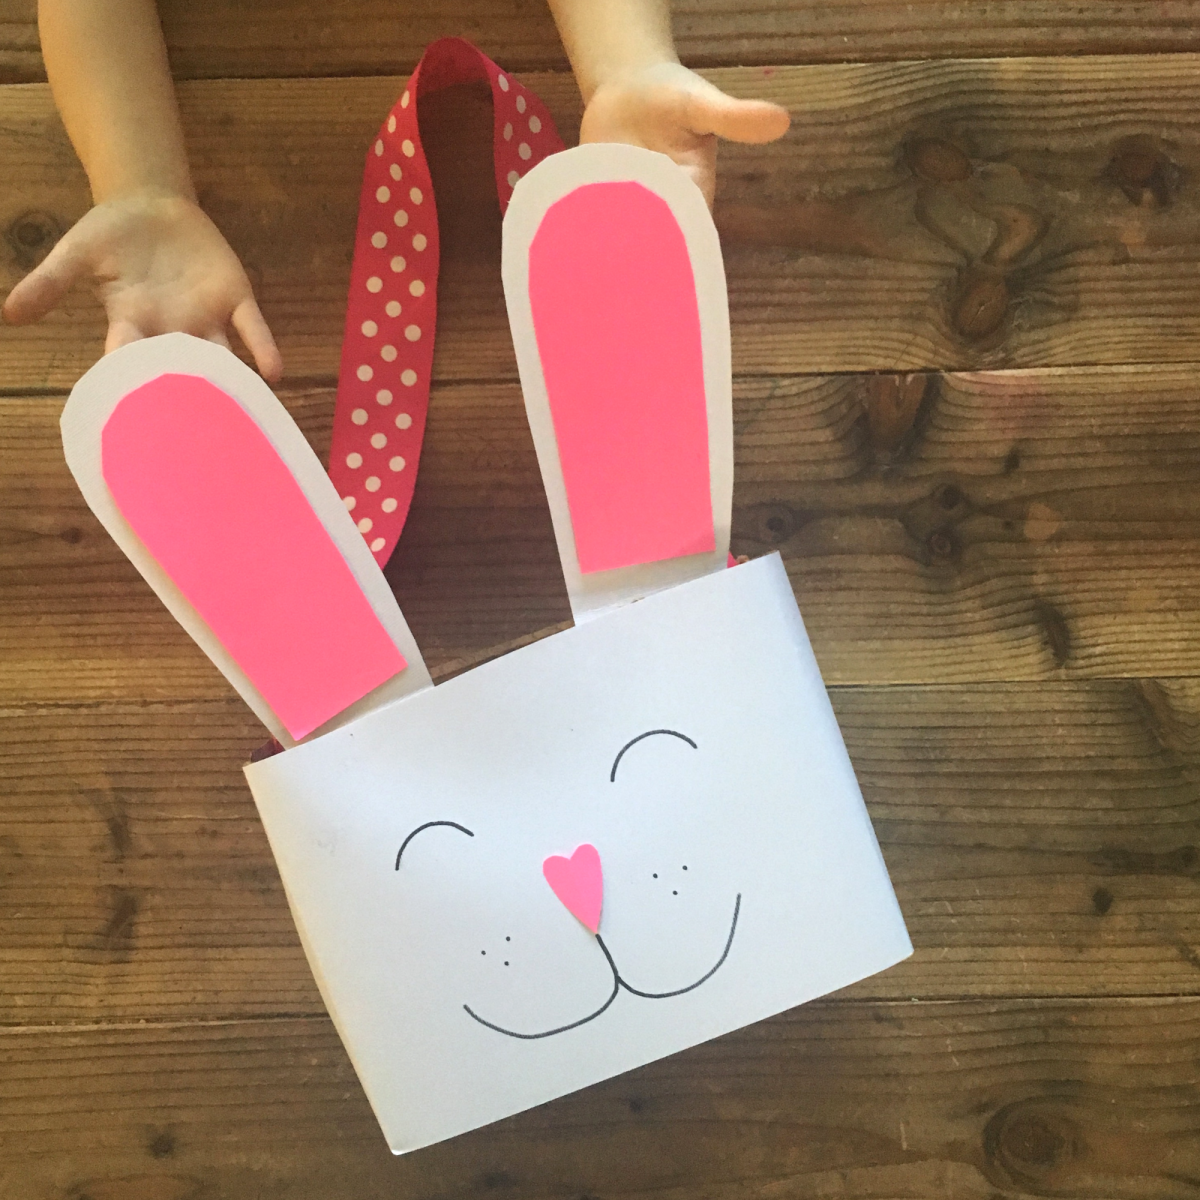 We had so much fun making this DIY Easter Bunny Basket and Carrot Hunt Command Game. The kiddos really enjoyed hunting for carrots and acting like bunnies.